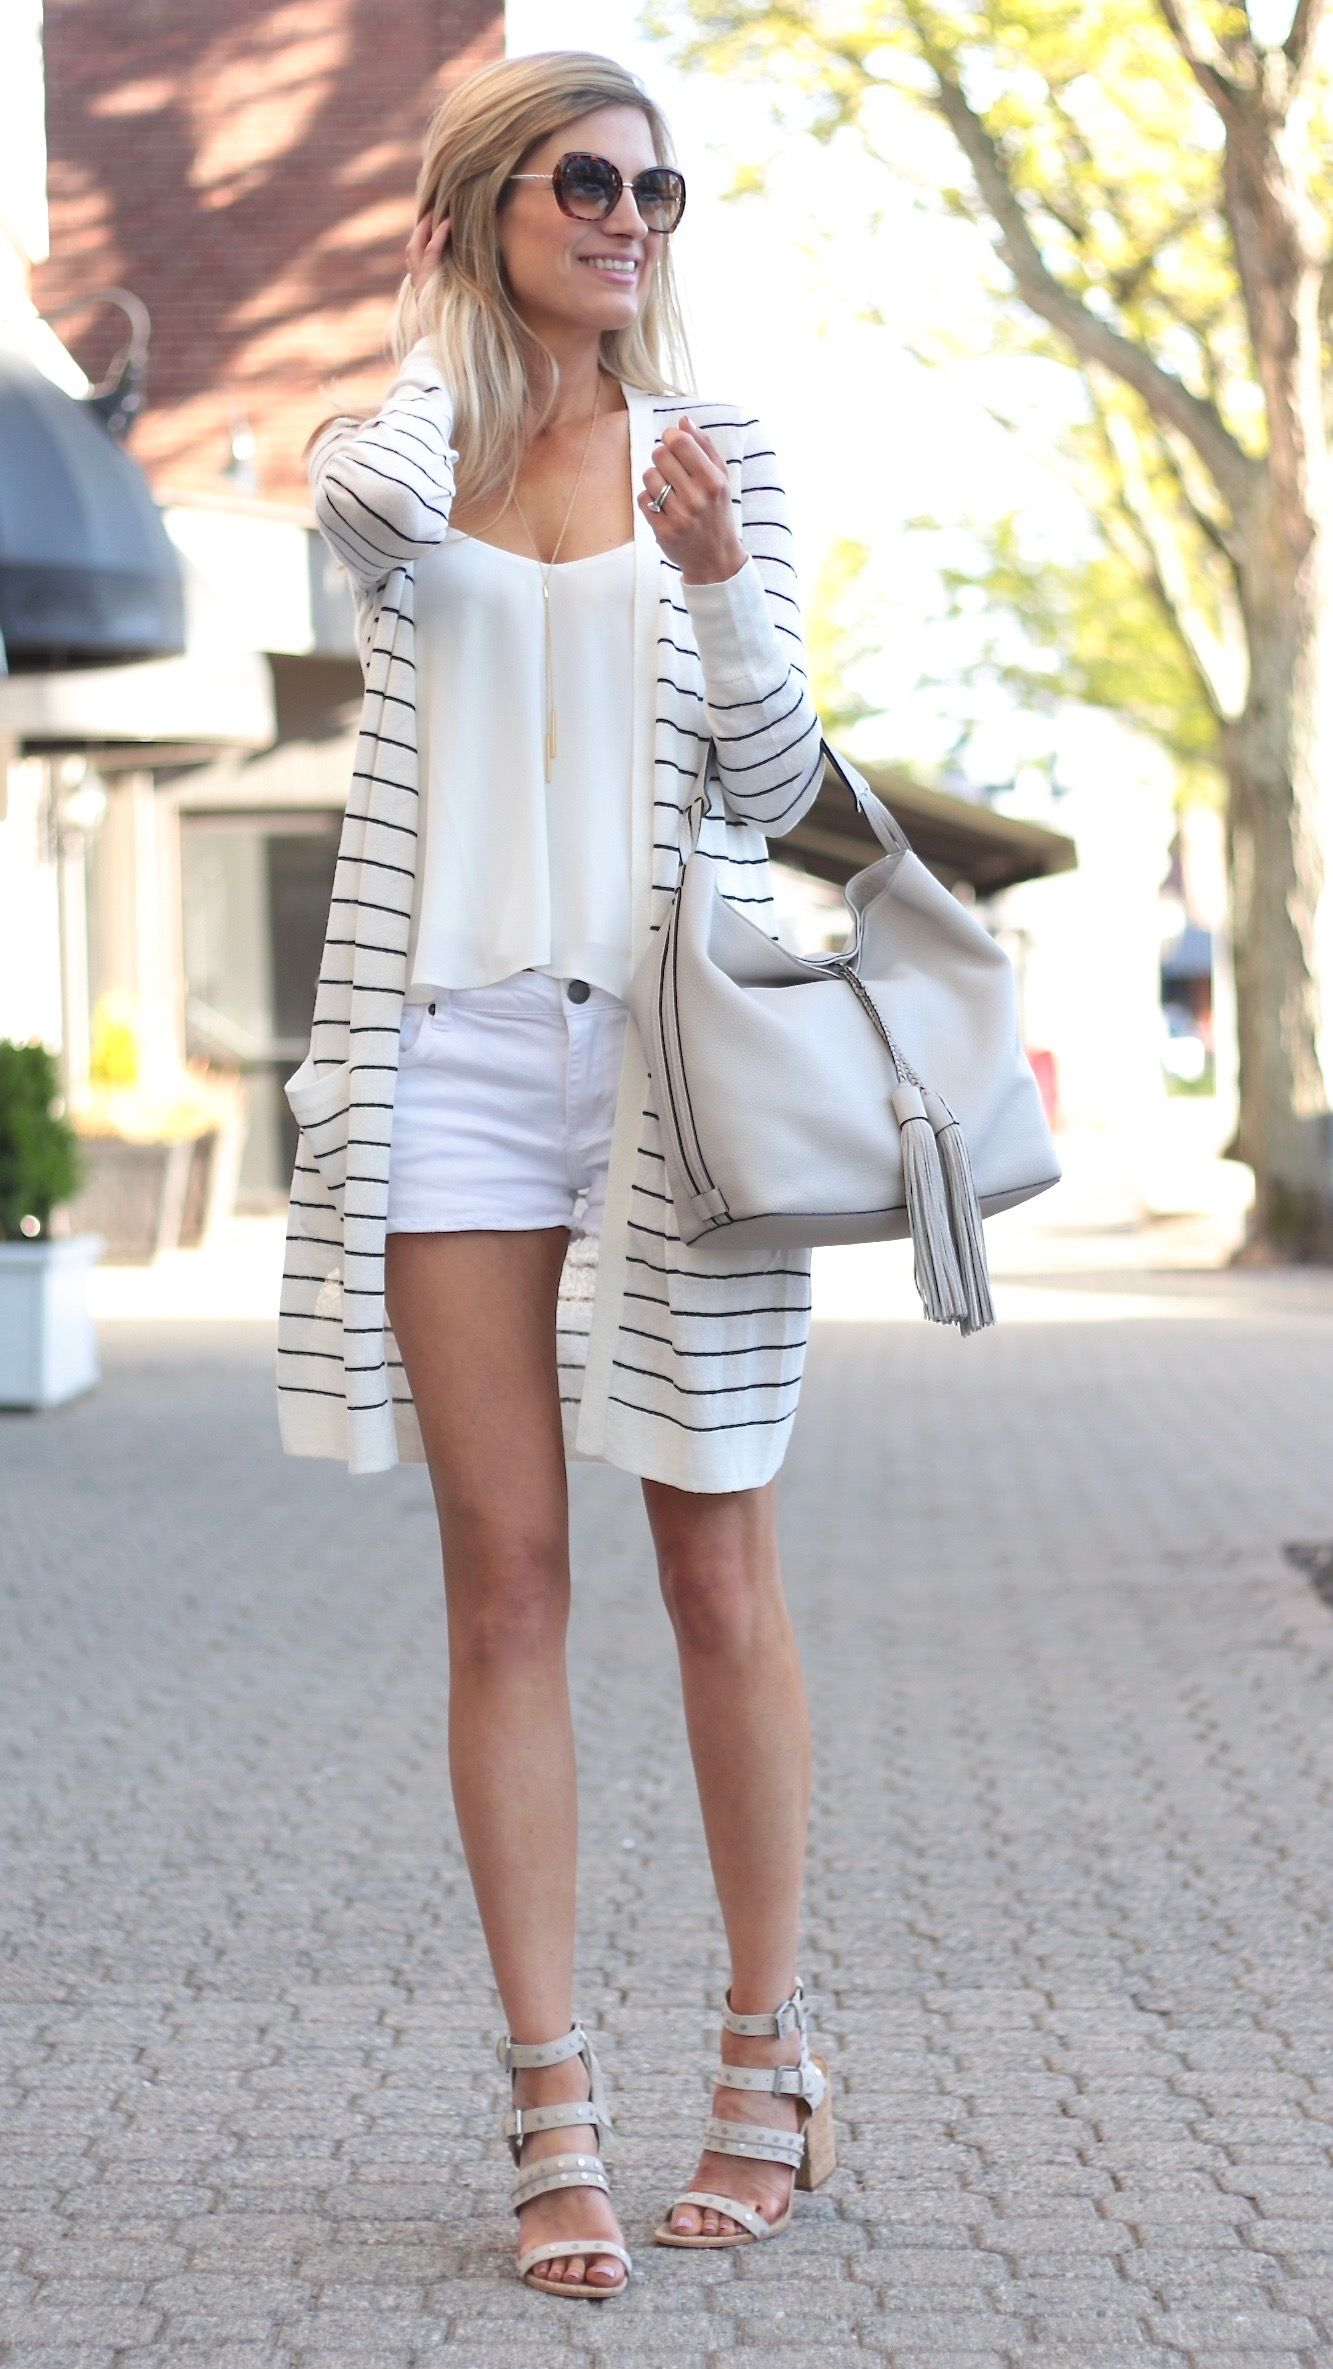 fbd0735dca9 summer outfit ideas - striped duster cardigan with wedge sandals